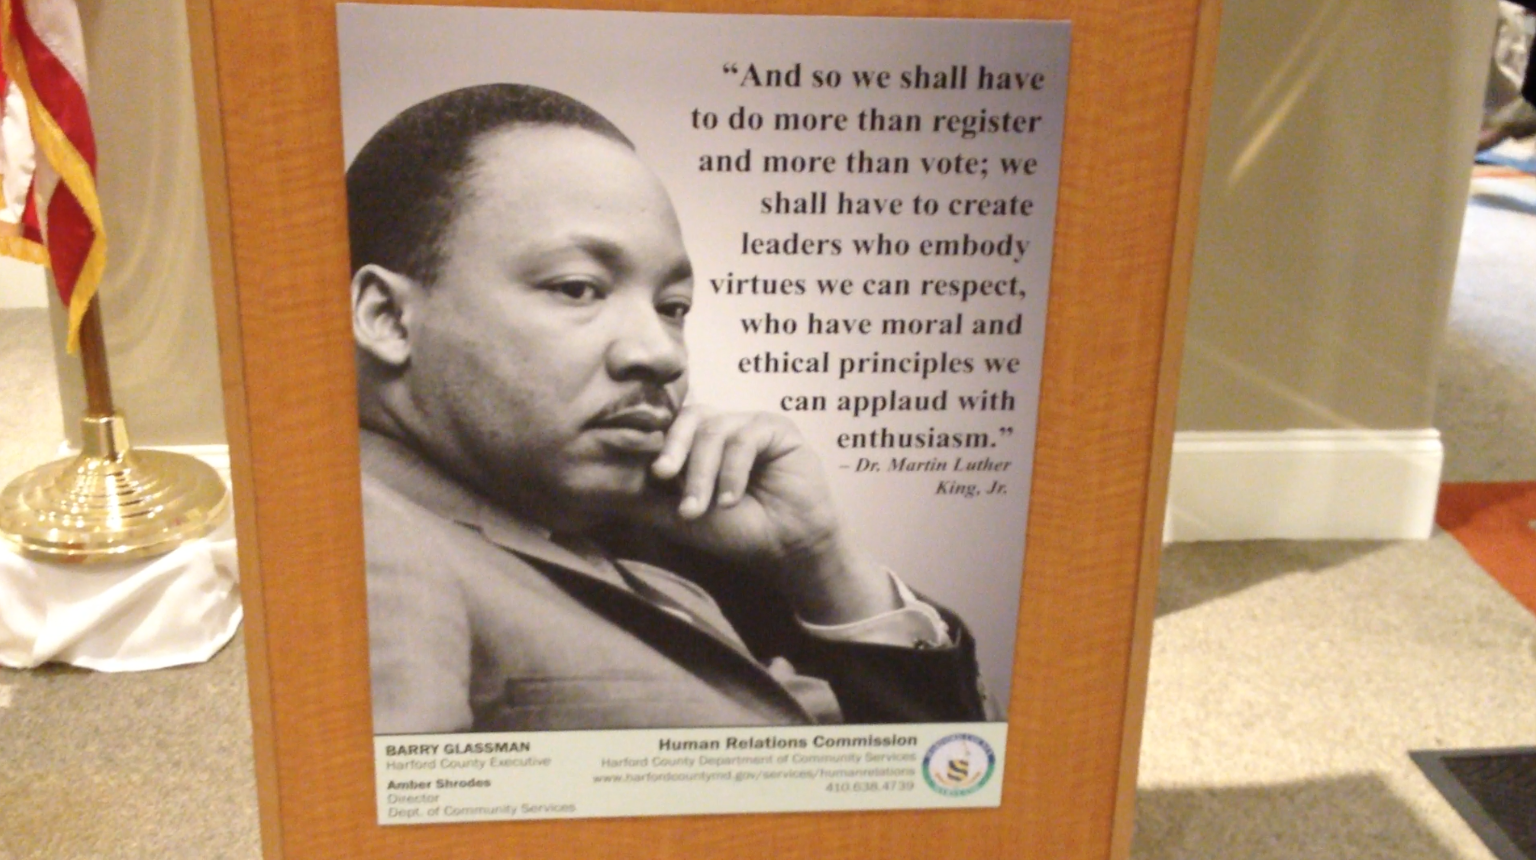 Martin Luther King, and his virtue?